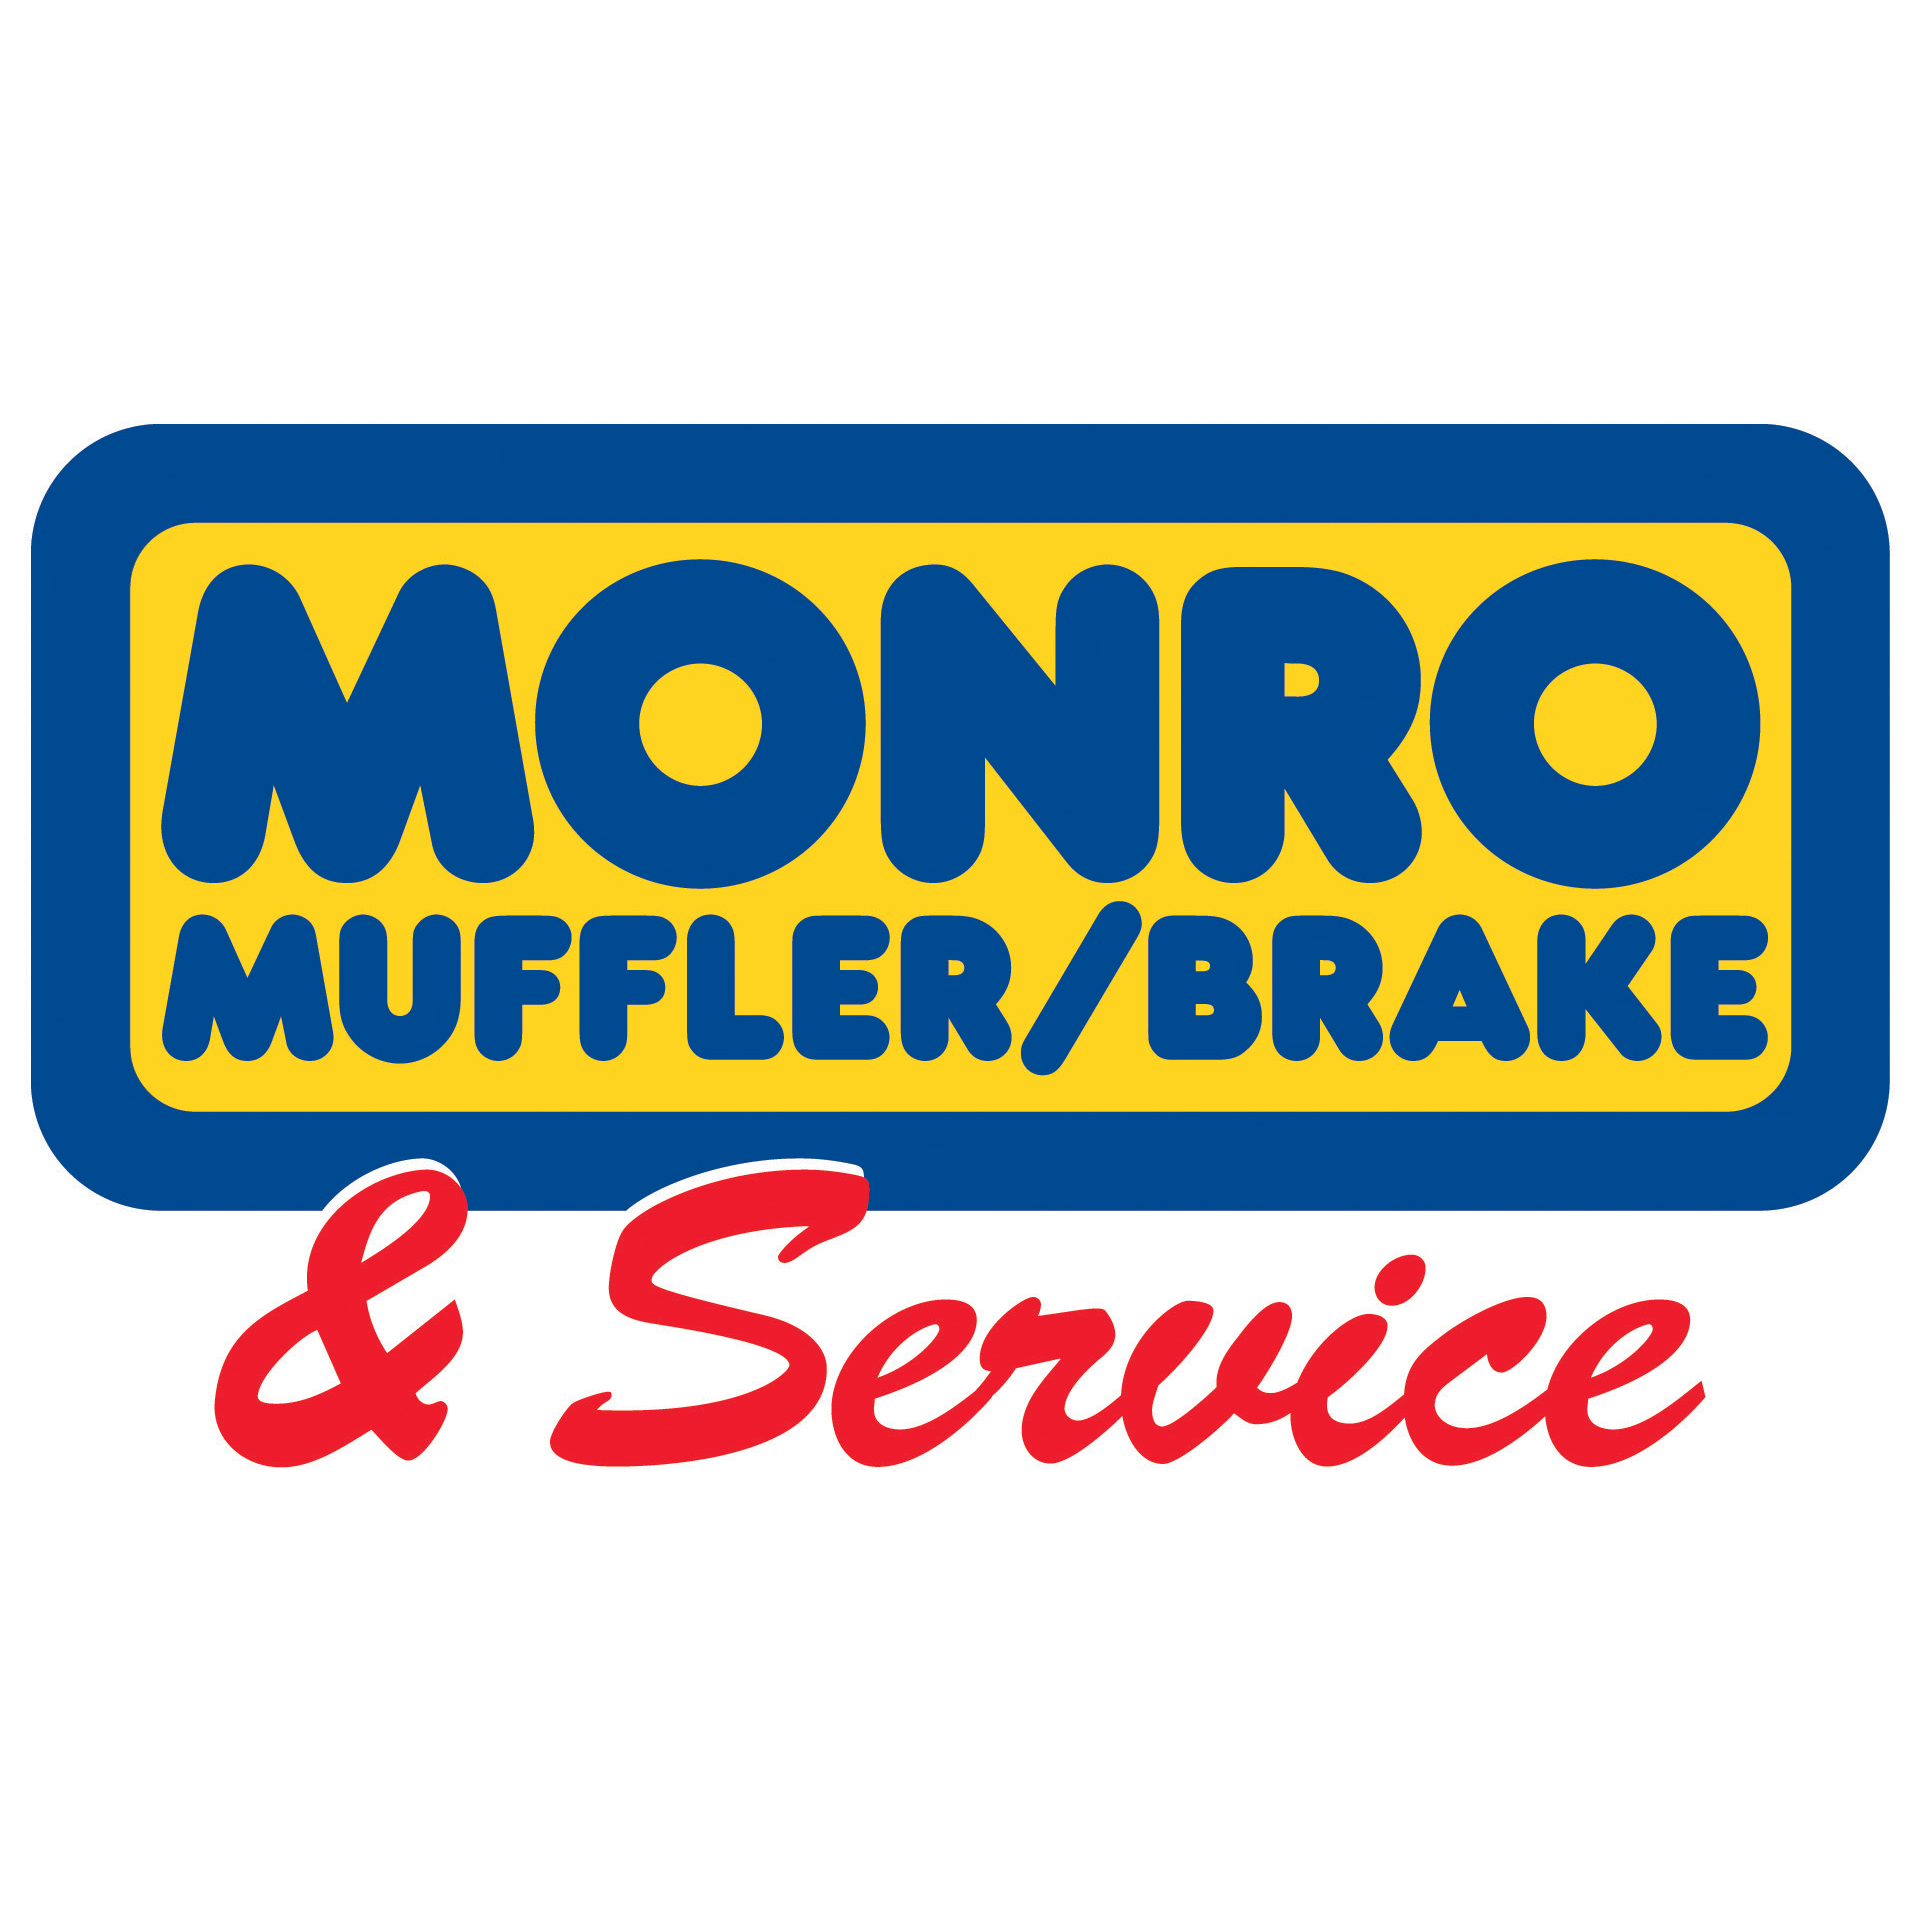 Monro Muffler Brake & Service - Washington Court House, OH - General Auto Repair & Service